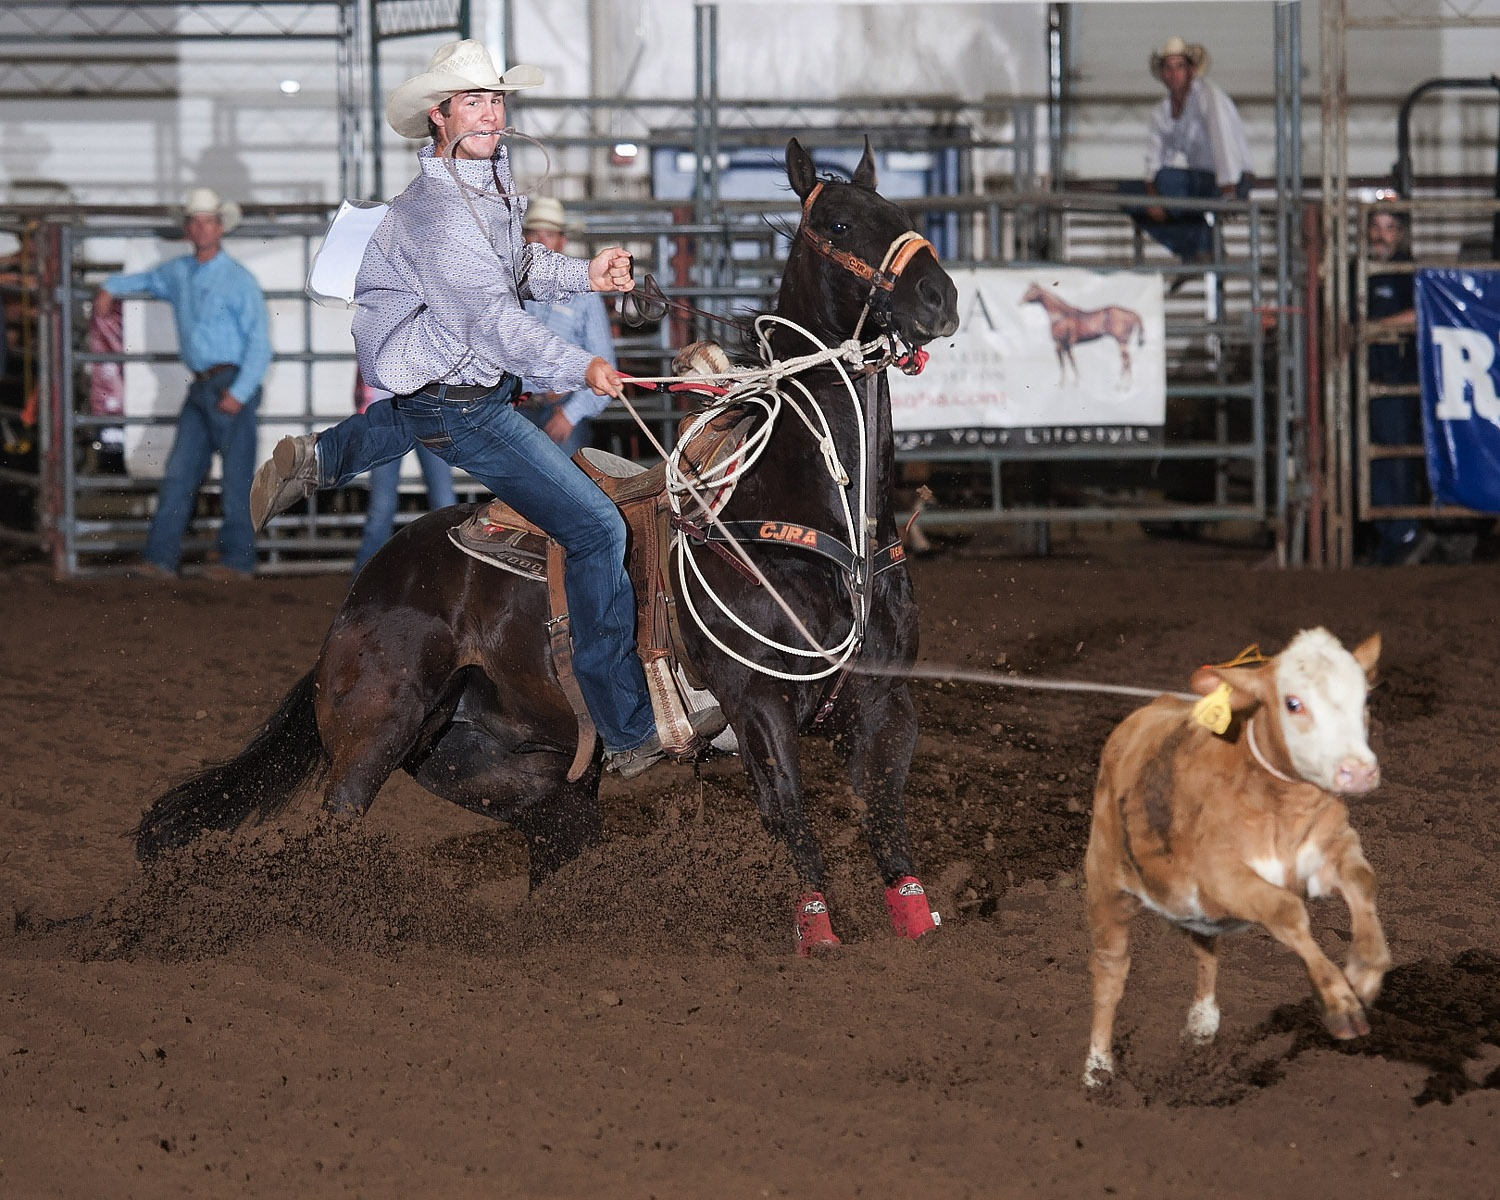 Trevor Kirchenschlager, Yuma, Colorado, shows his winning form in calf roping at the recent Kansas High School Rodeo, where he ended up third for the year to qualify for the National High School Rodeo Finals July 13-19, in Rock Springs, Wyoming. (Photo courtesy Kent Kerschner, www.fotocowboy.com, kent@fotocowboy.com.)